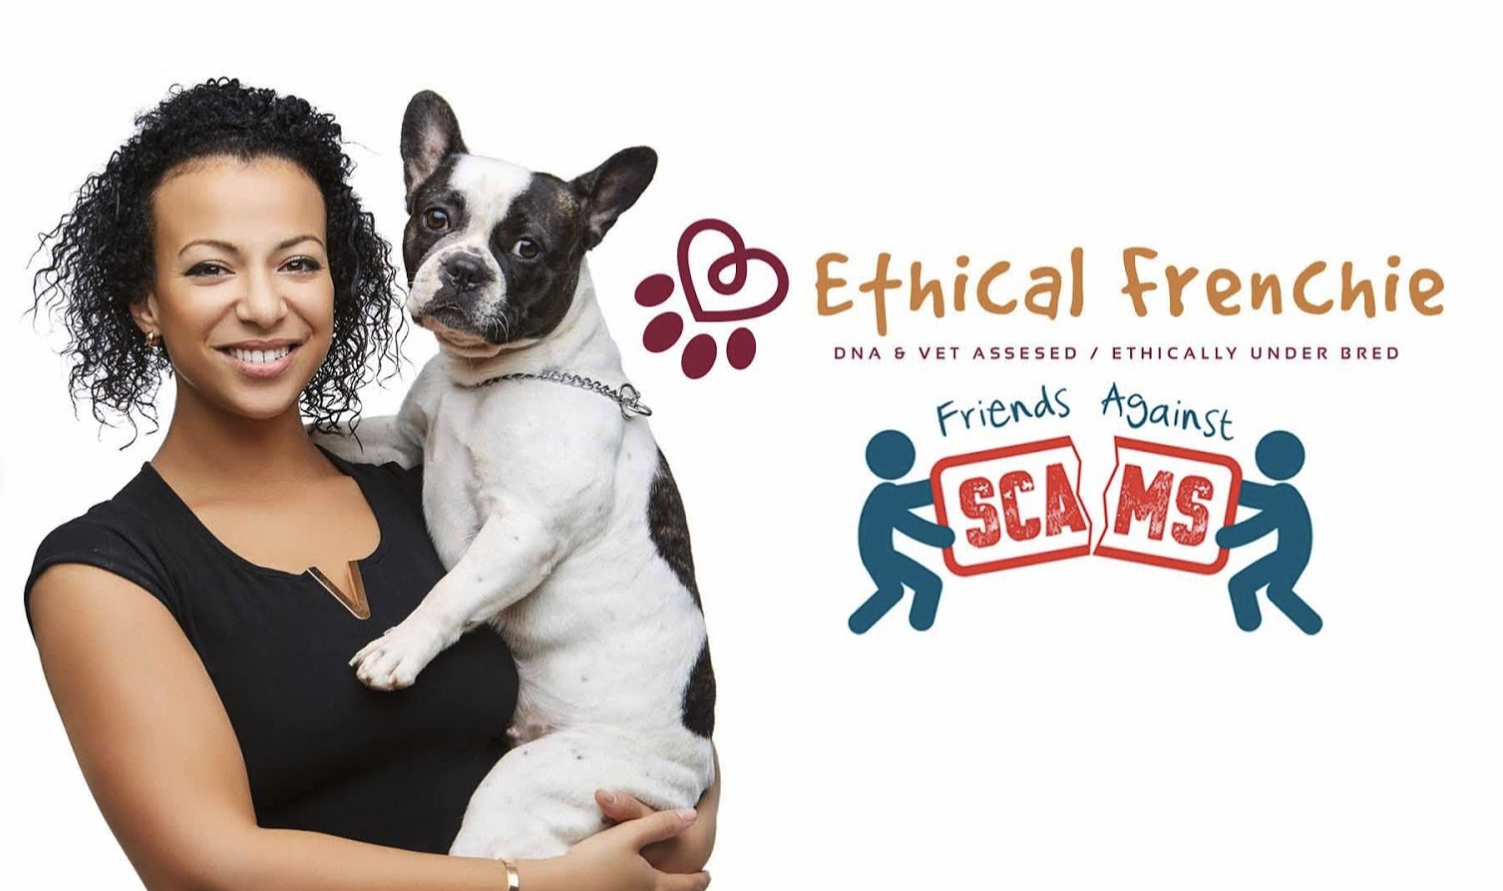 Ethical Frenchie